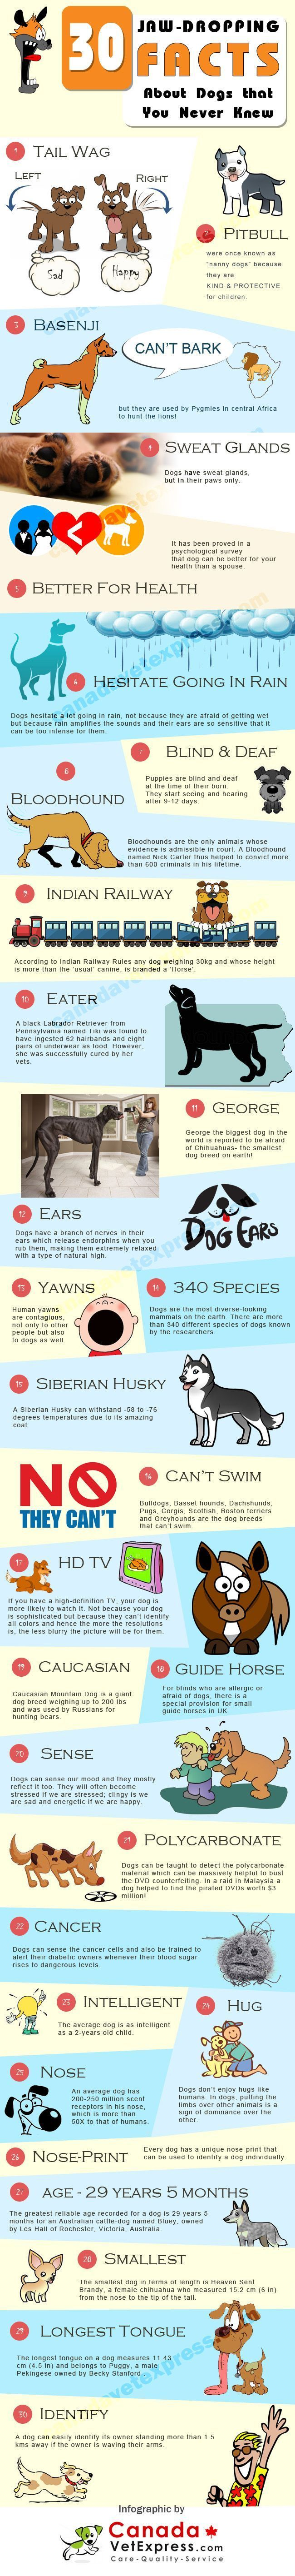 30 Fun Facts About Dogs | Animal Bliss - Tap the pin for the most adorable pawtastic fur baby apparel! You'll love the dog clothes and cat clothes! <3